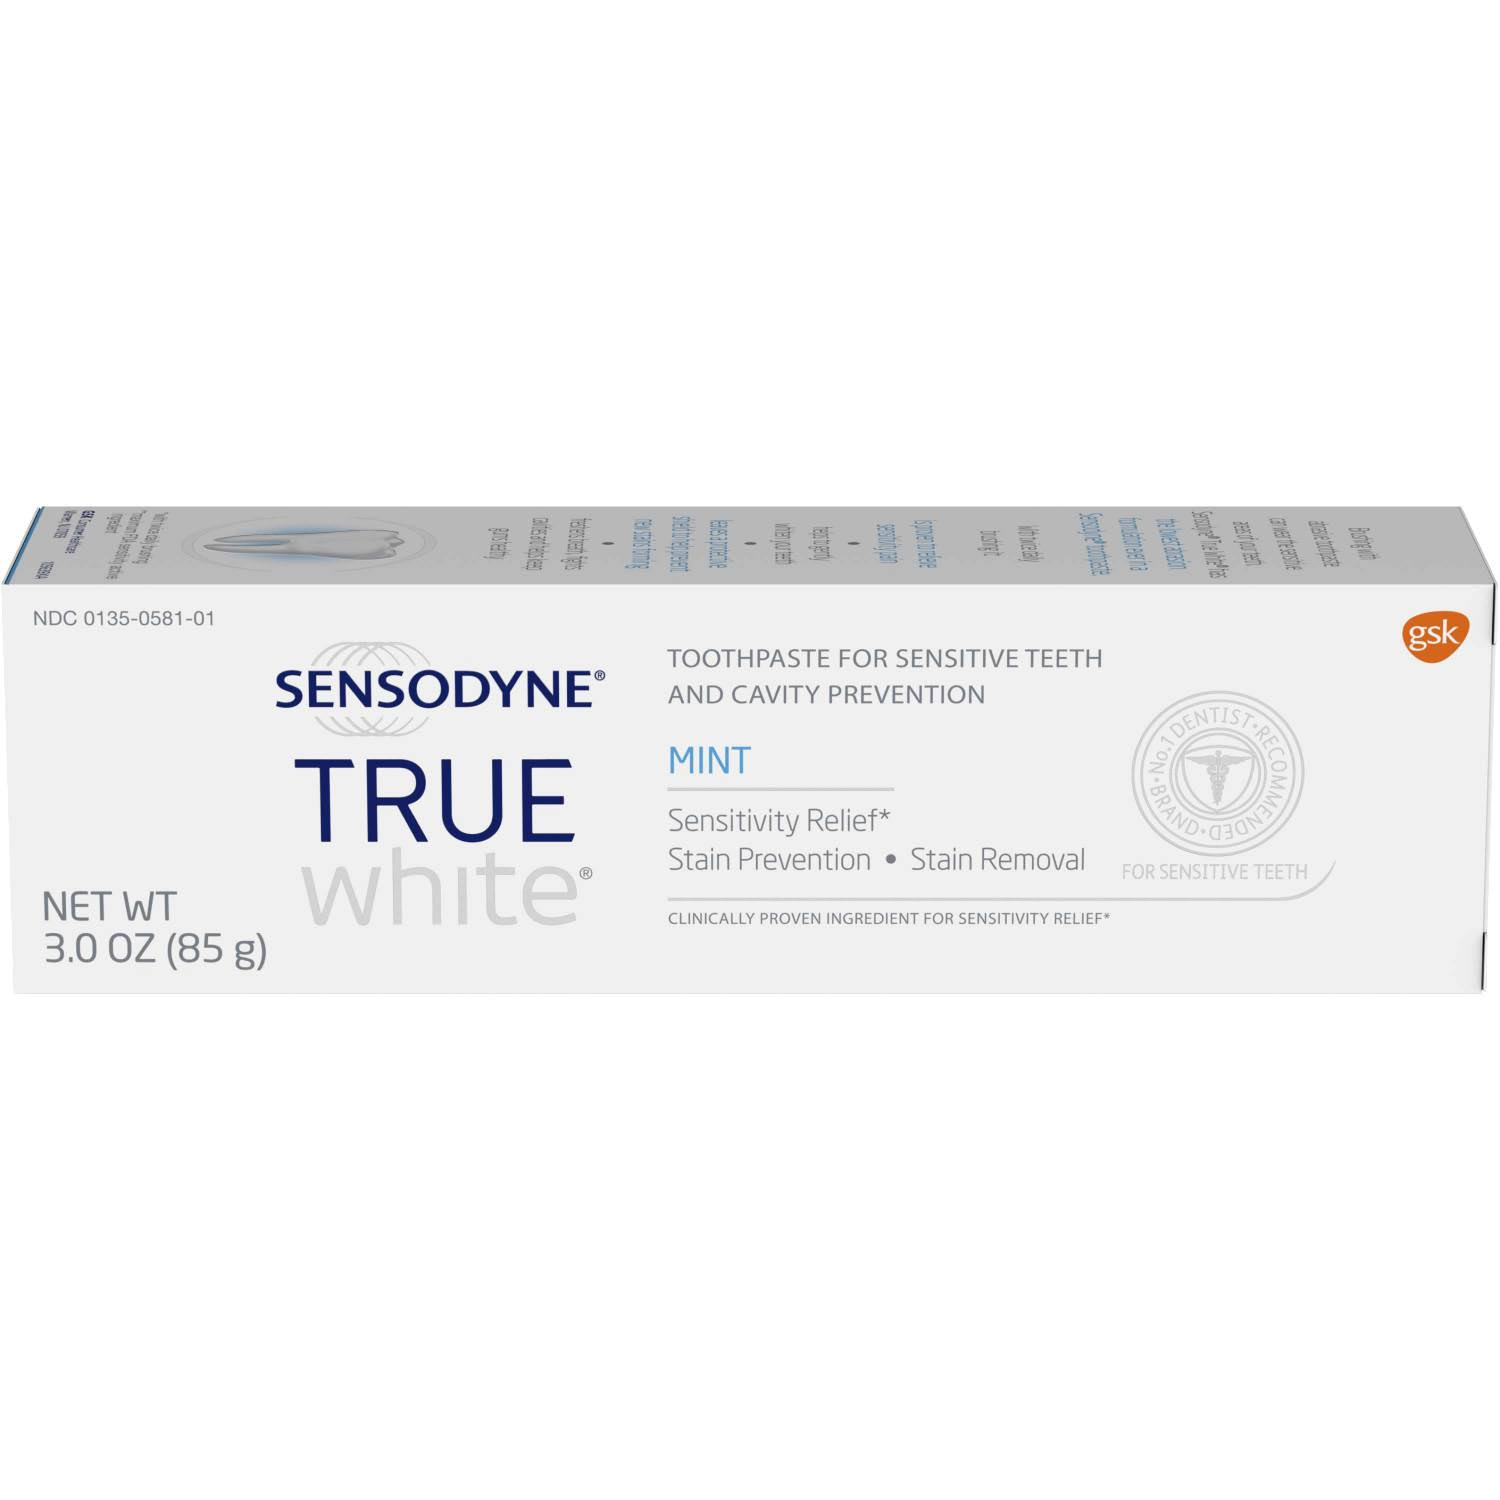 Sensodyne True White Toothpaste - Mint, 85g